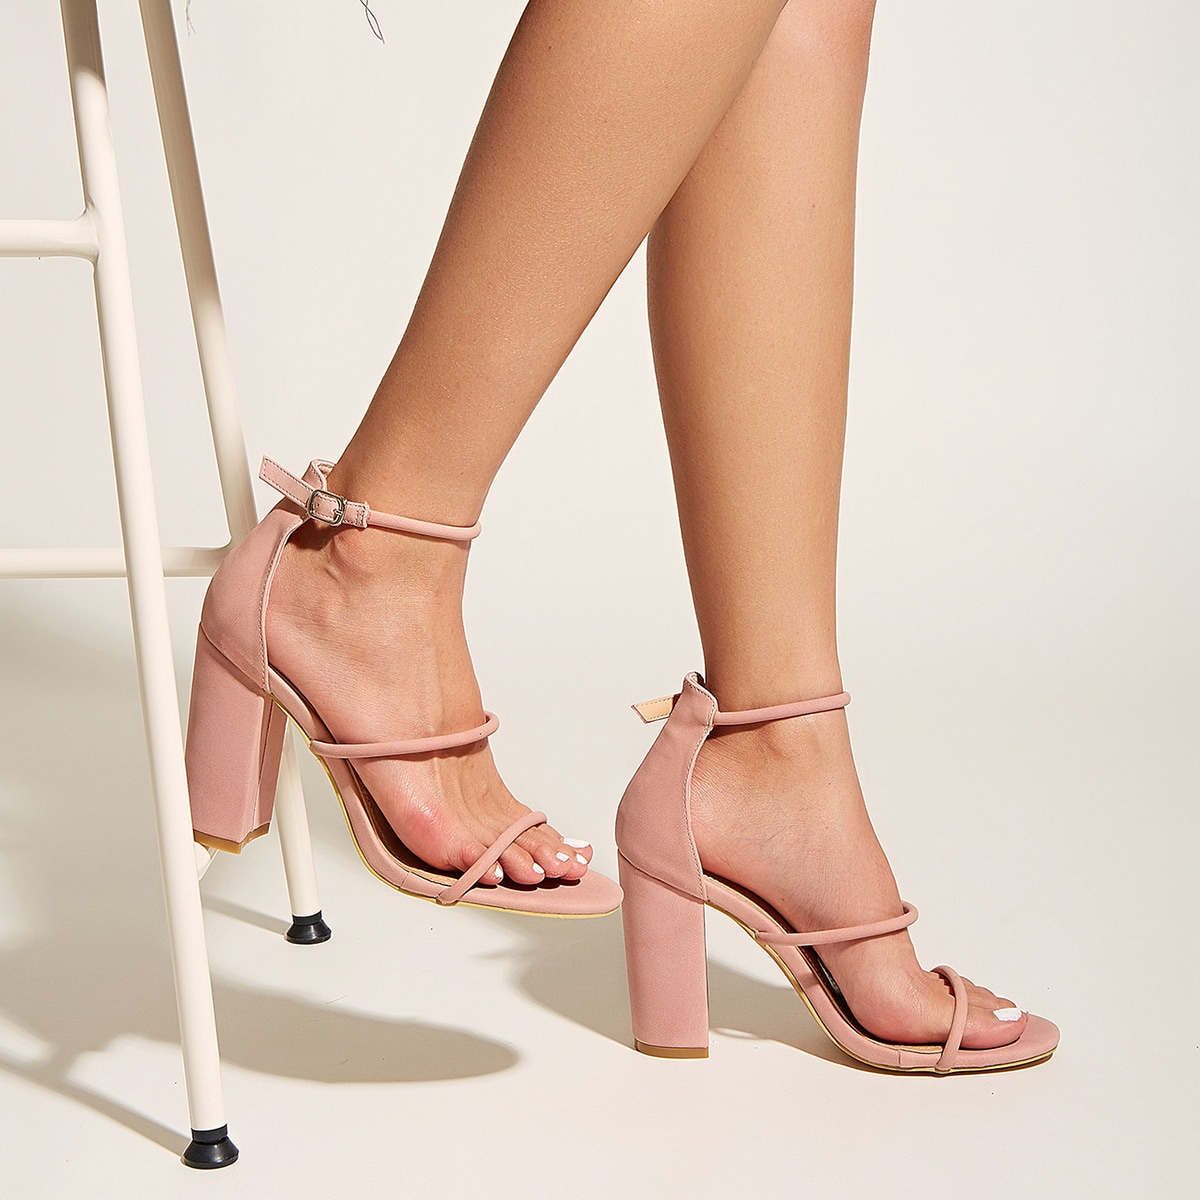 SHEIN / Thin Strap Ankle Strap Chunky Heeled Sandals